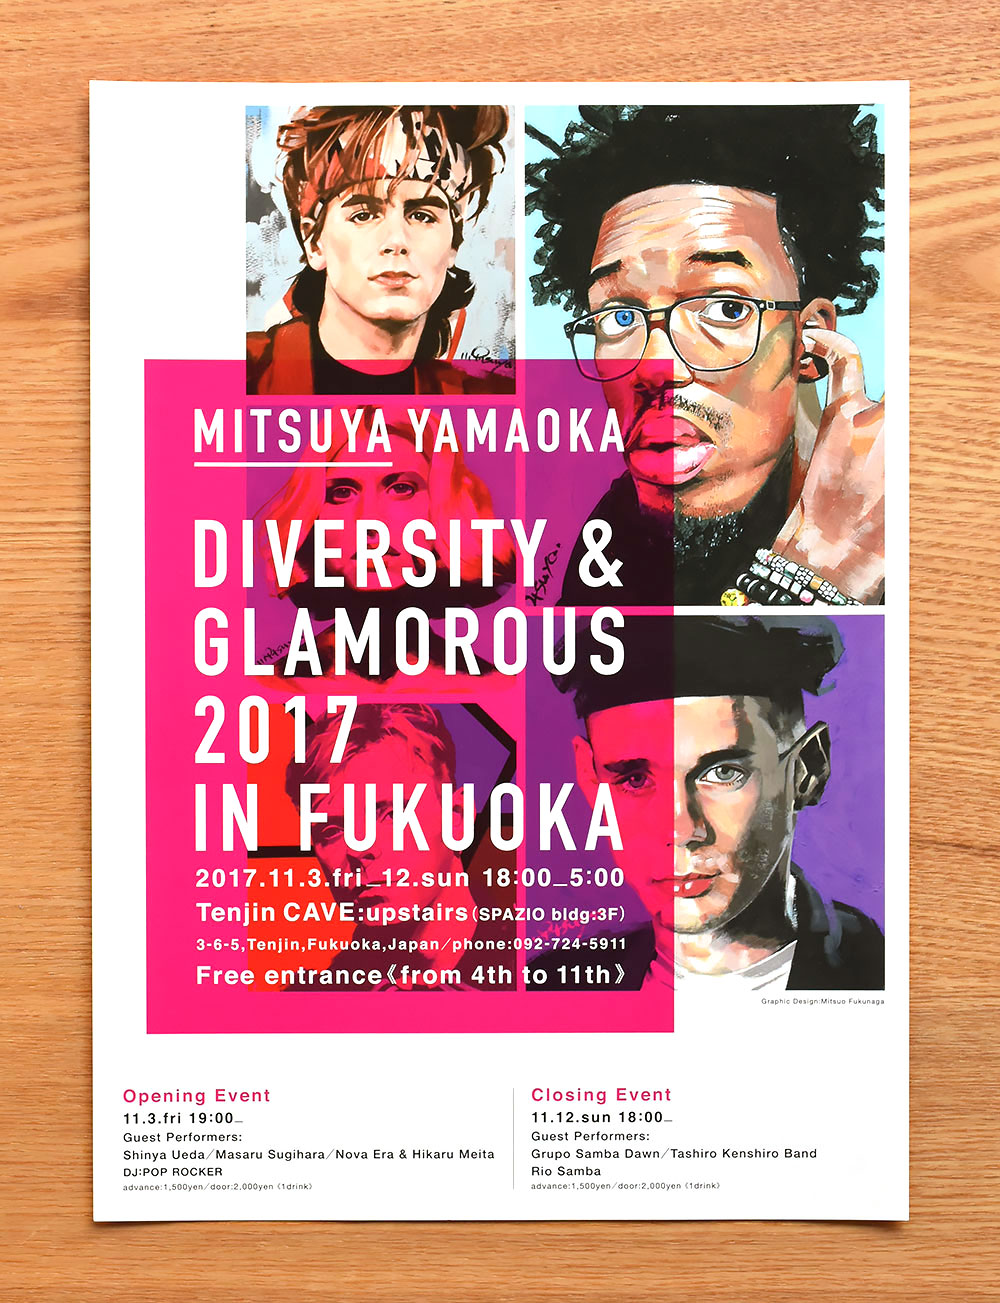 EVENT:山岡満也 肖像画展 [DIVERSITY&GLAMOROUS 2017 IN FUKUOKA] ベントフライヤー、ポスター、グッズデザイン